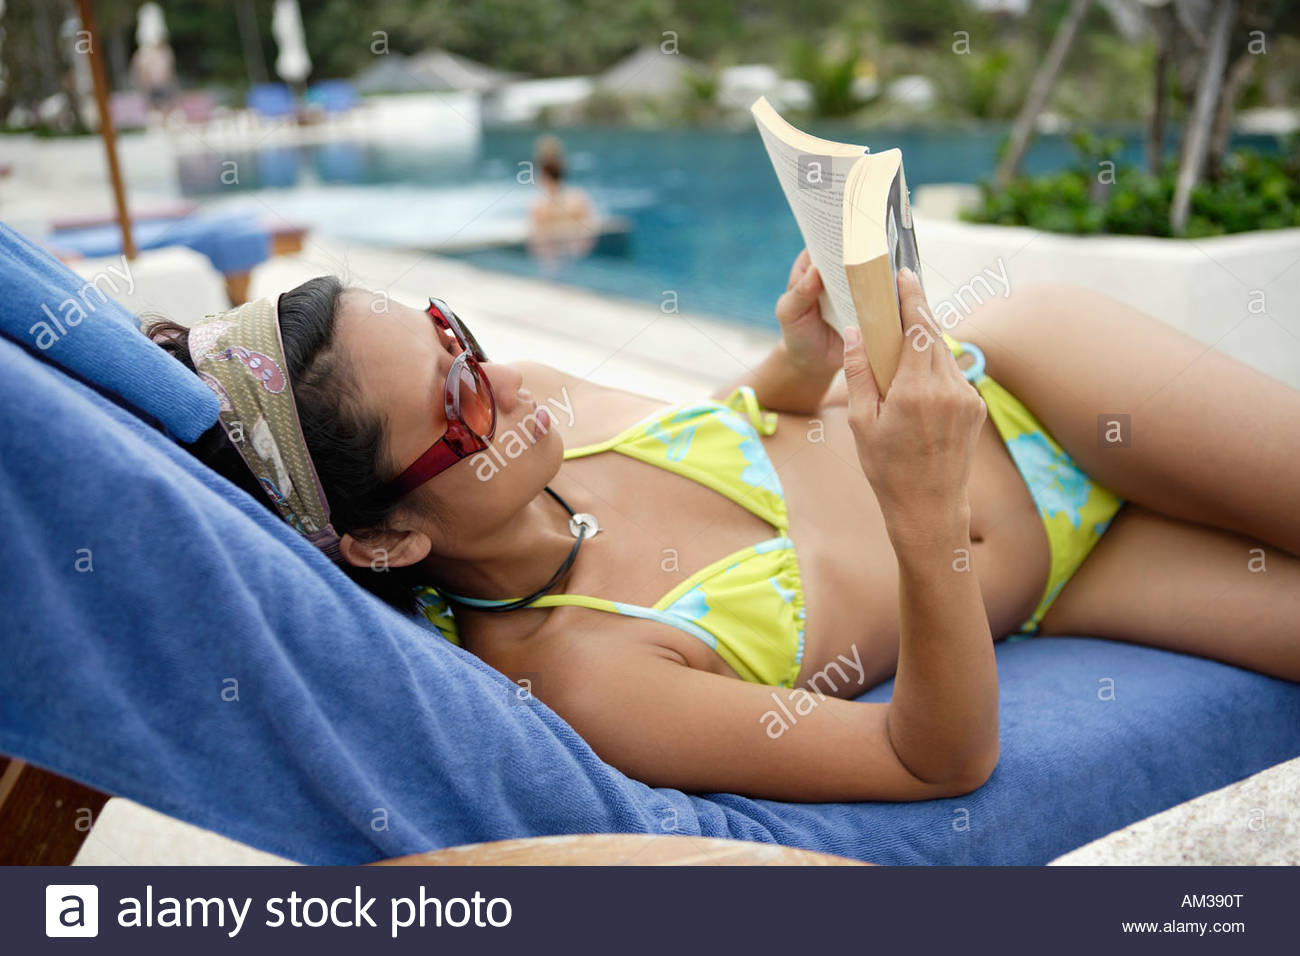 Woman lying by pool with book - Stock Image